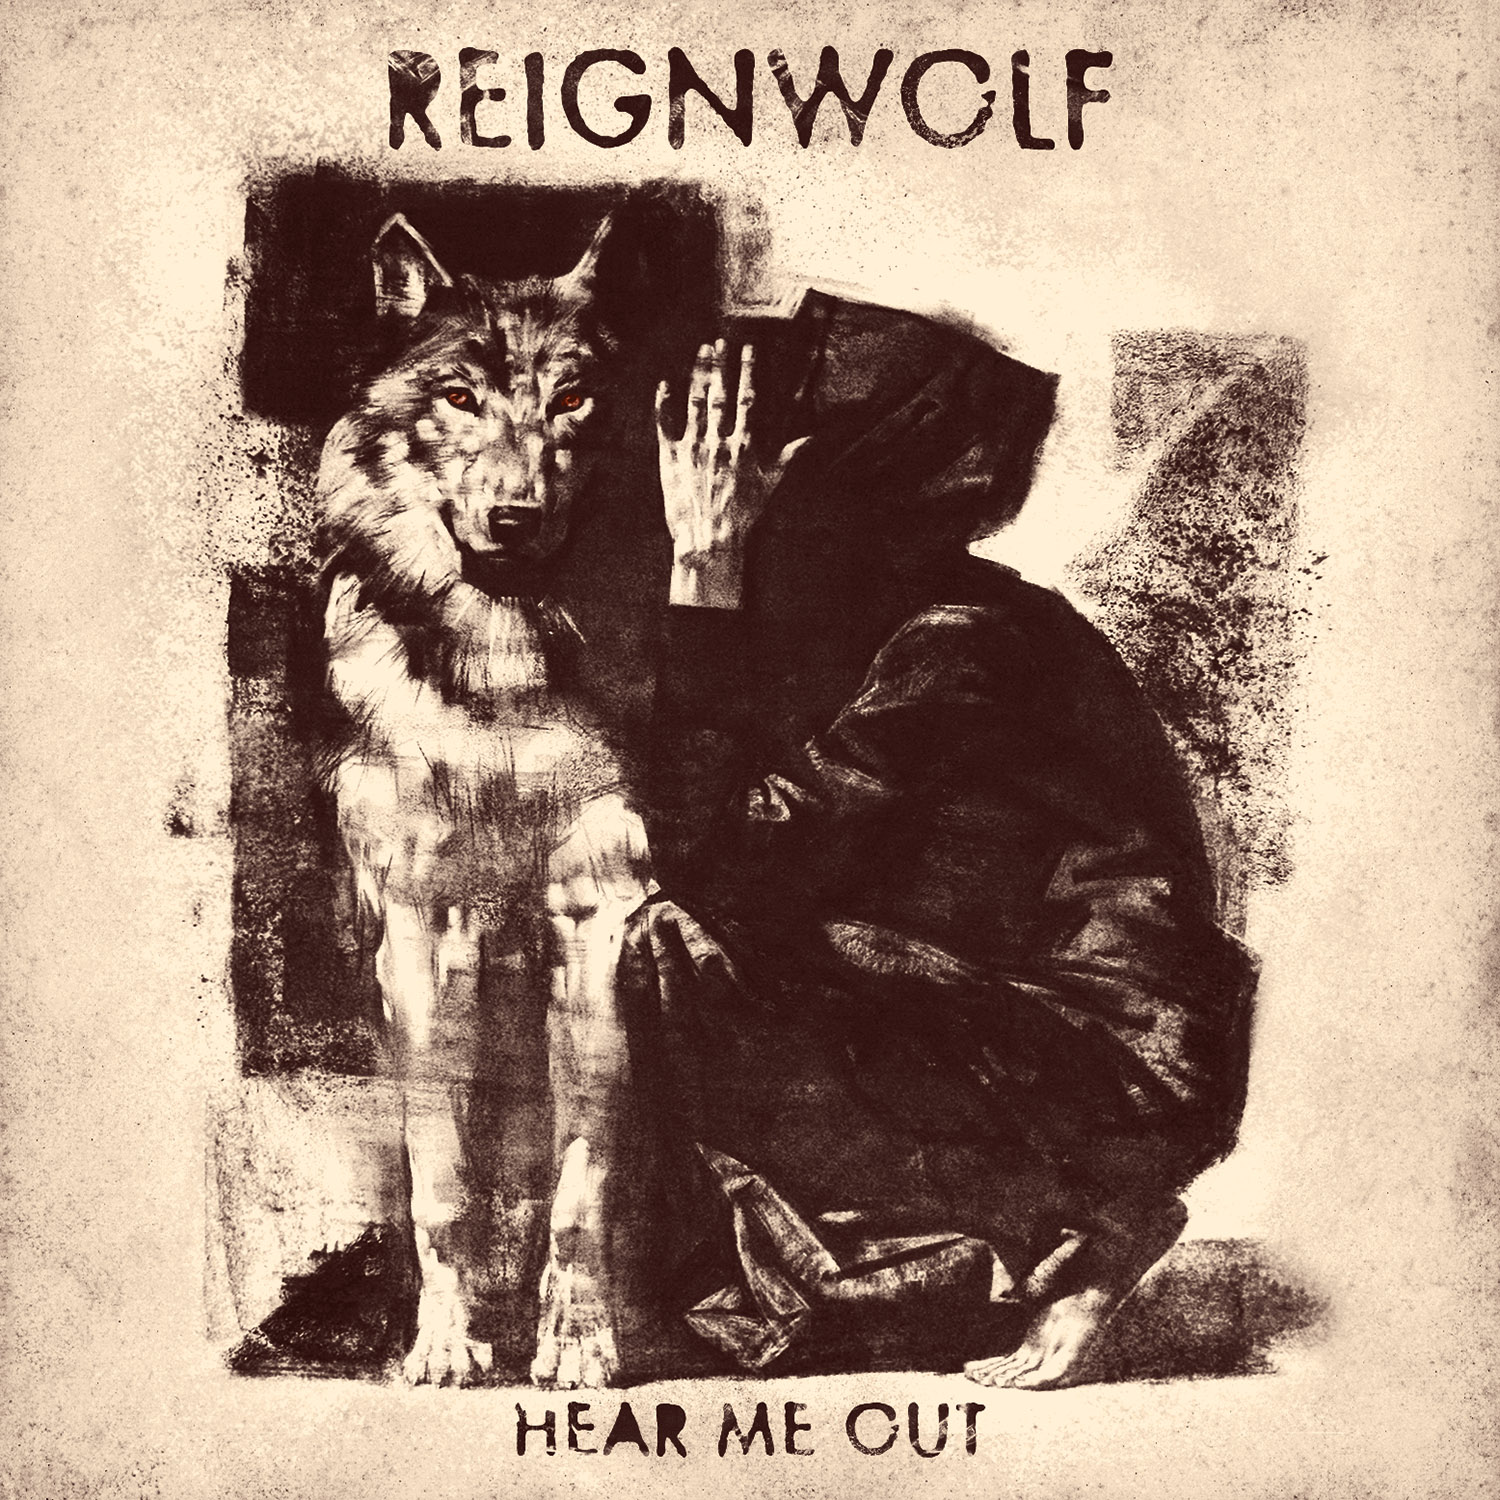 reingwolf hear my out album cover artwork